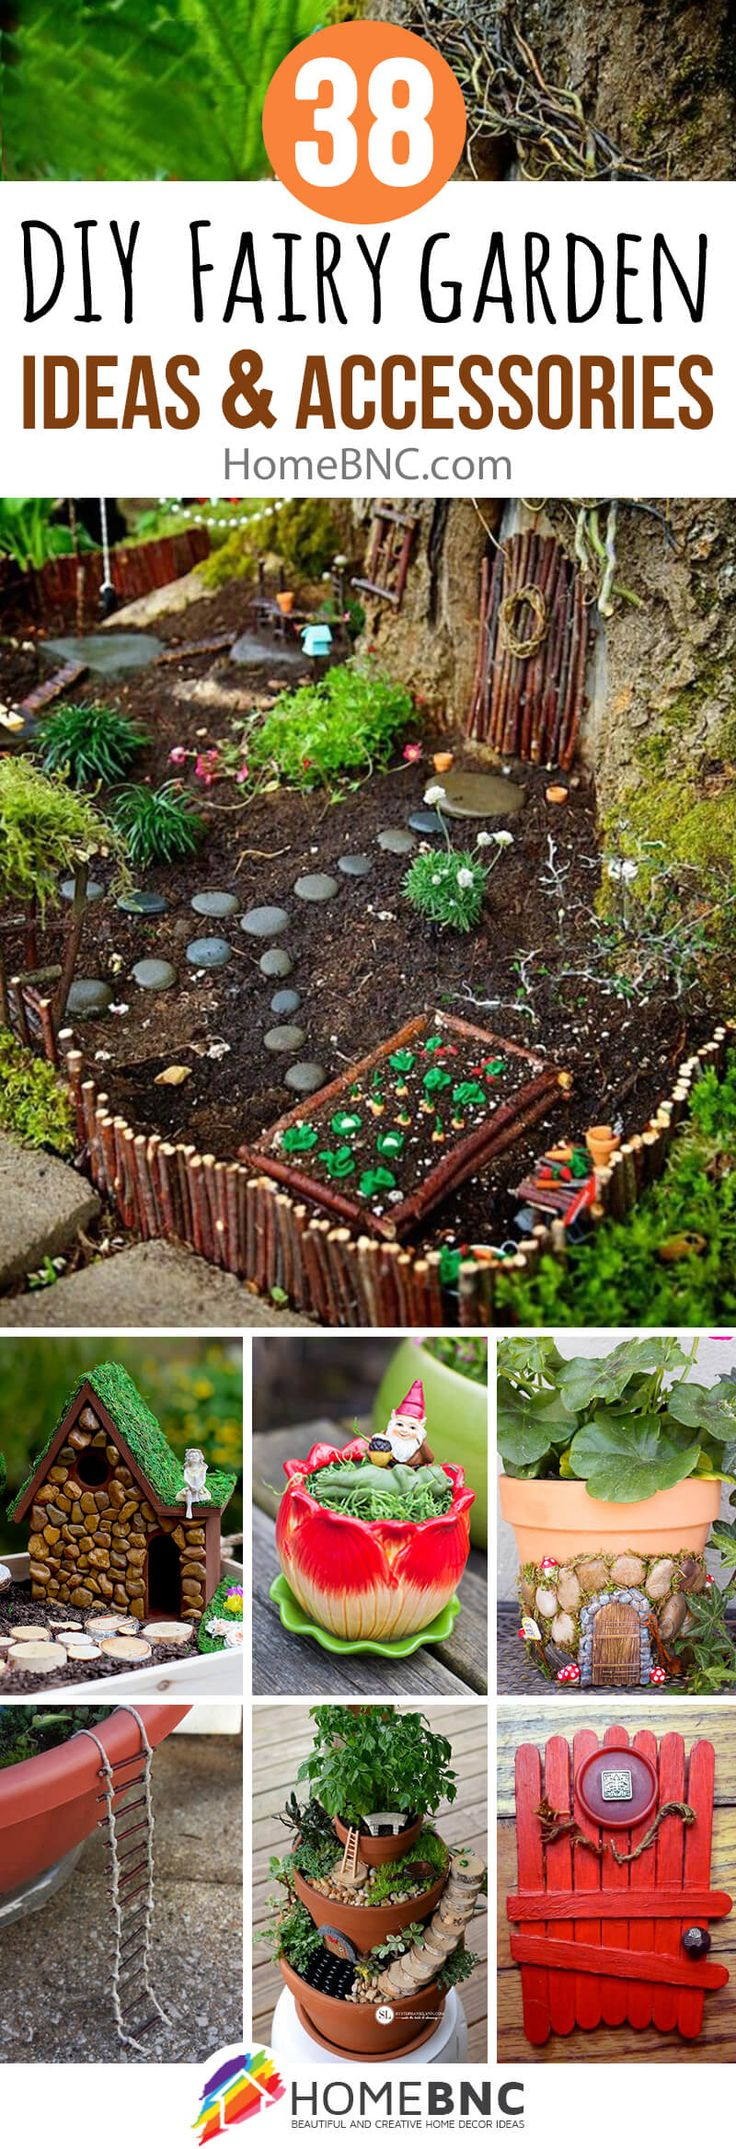 38 faboluos diy fairy garden ideas and accessories to add some magic to your home